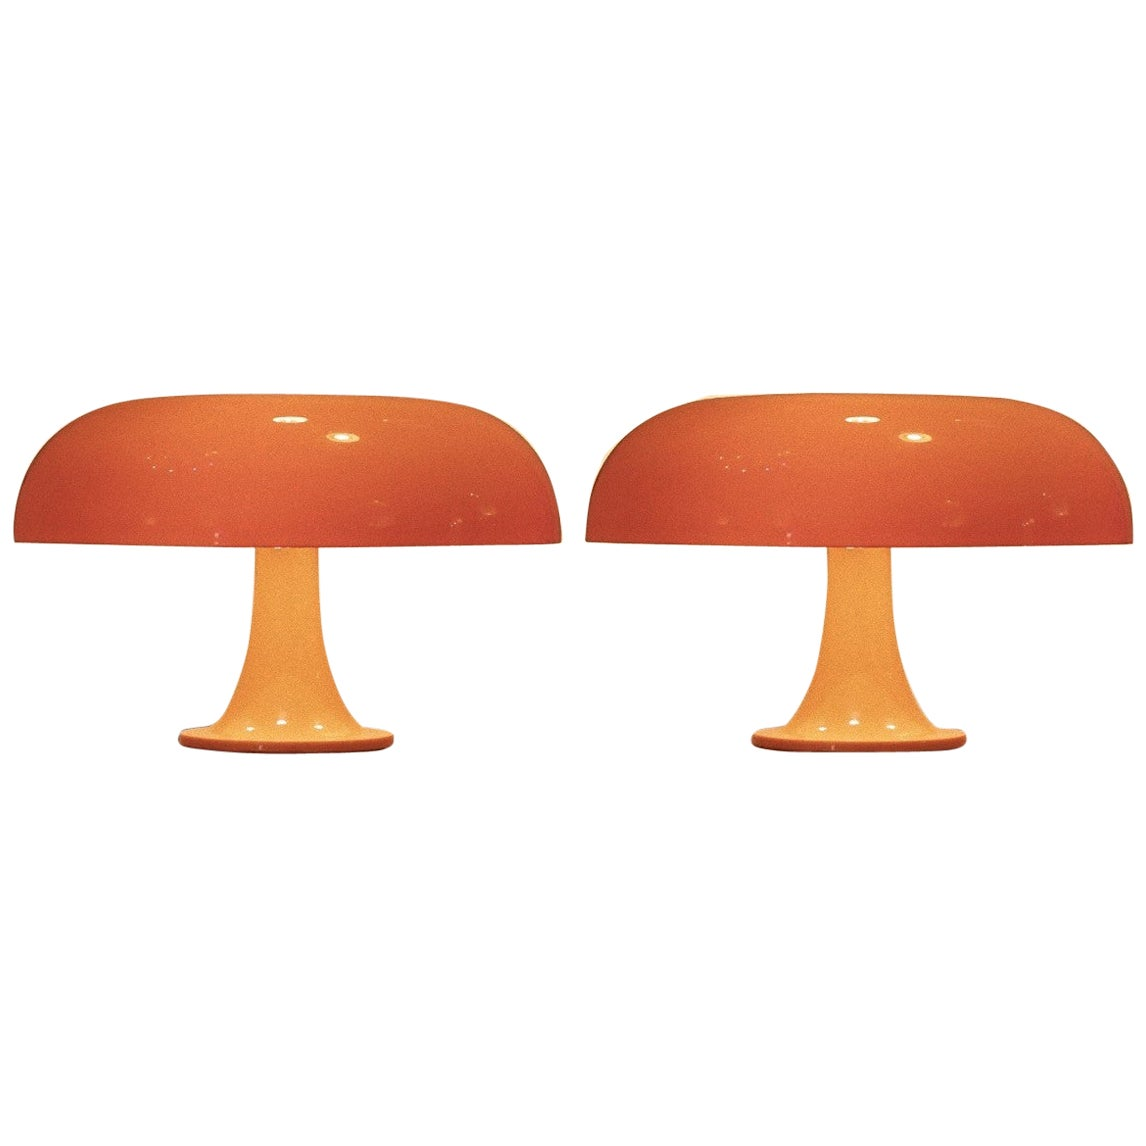 Nesso Lamps, Vintage Table Lamps by G. Mattioli for Artemide, 1960s